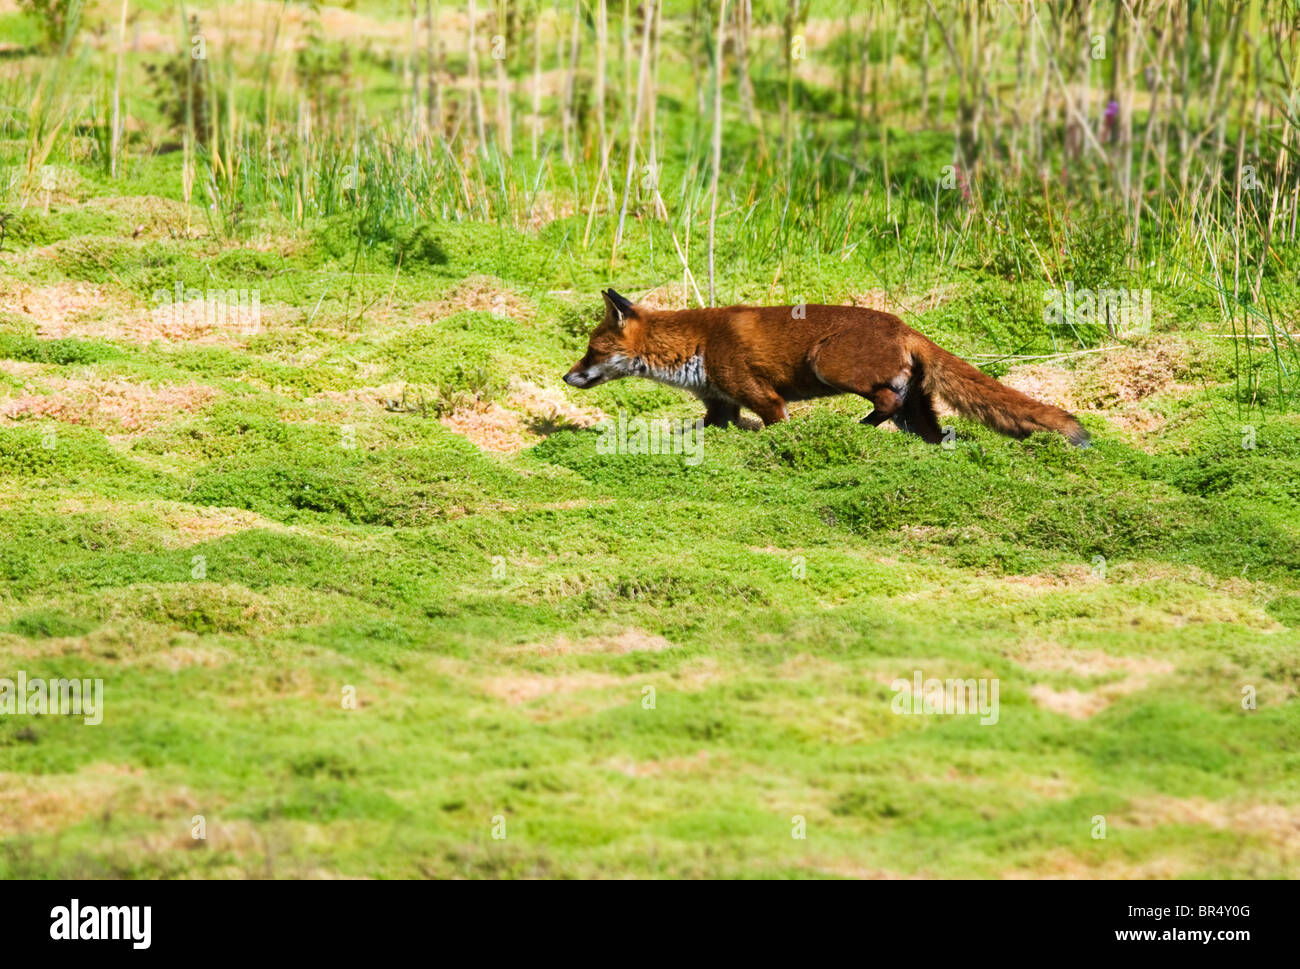 Red Fox (Vulpes Vulpes) on the prowl in Warwickshire countryside - Stock Image